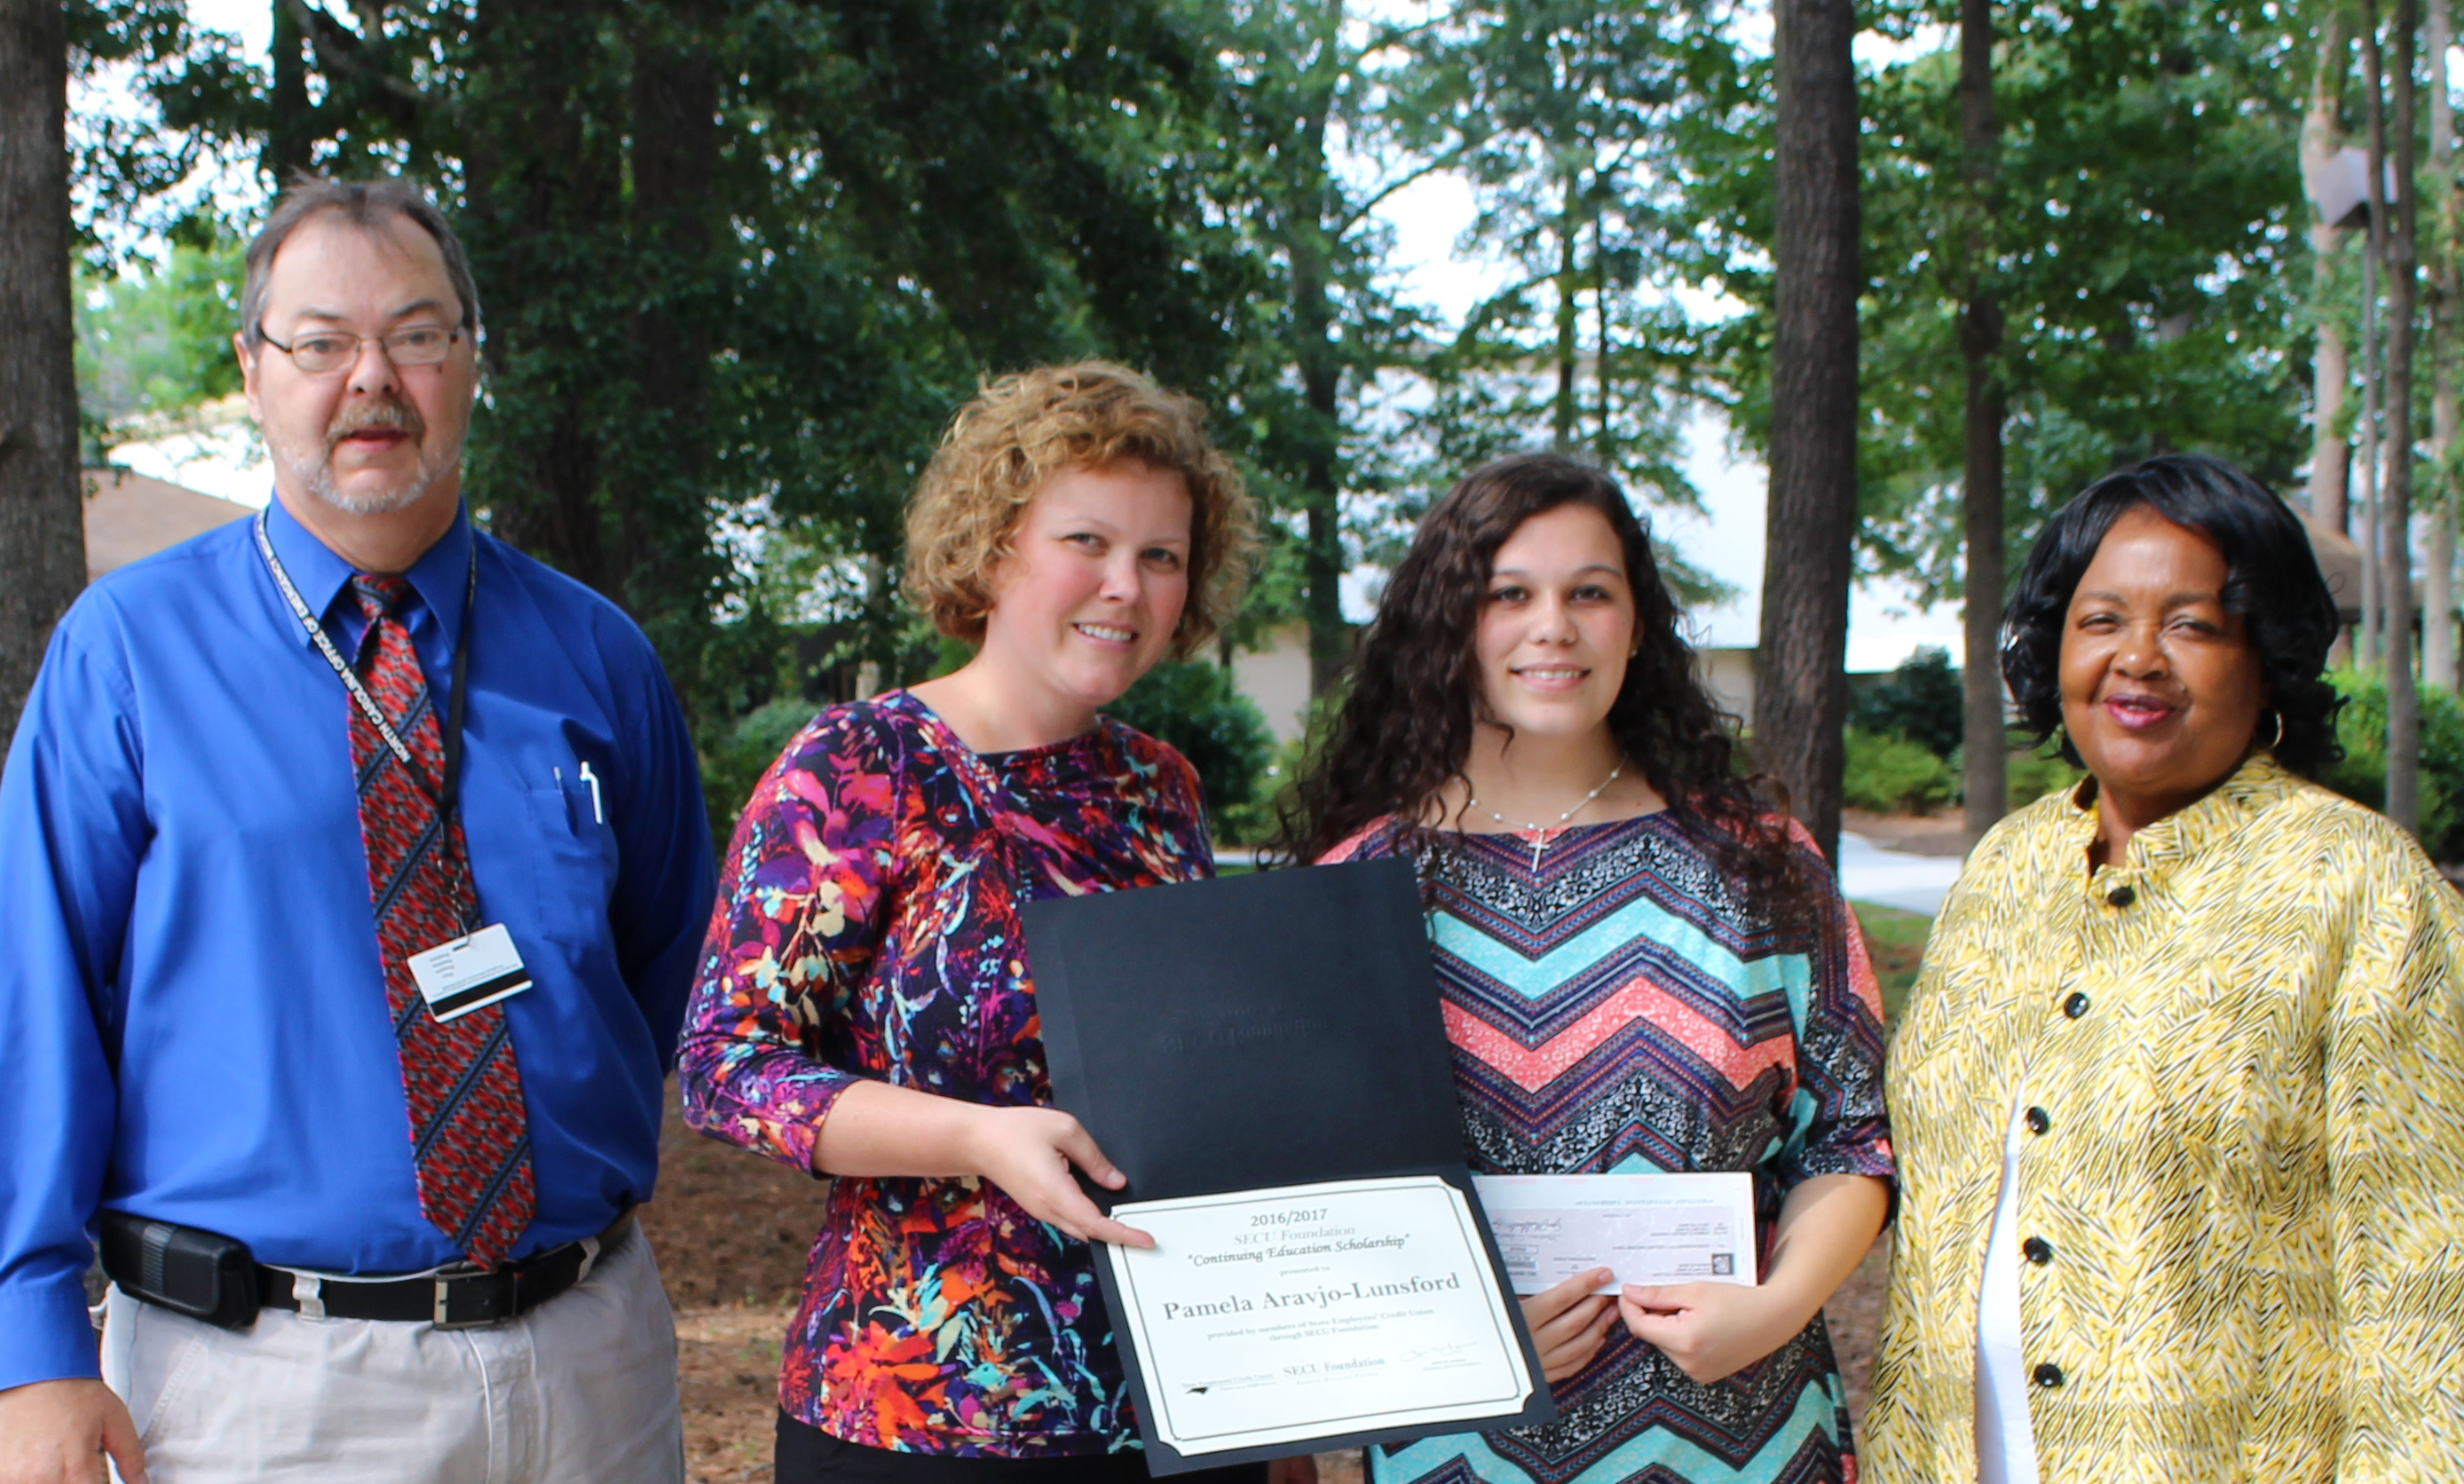 secu scholarship essay Secu scholarship shell employees' credit union is pleased to announce the secu learning grant program which will award 4 an essay of 500 words or.